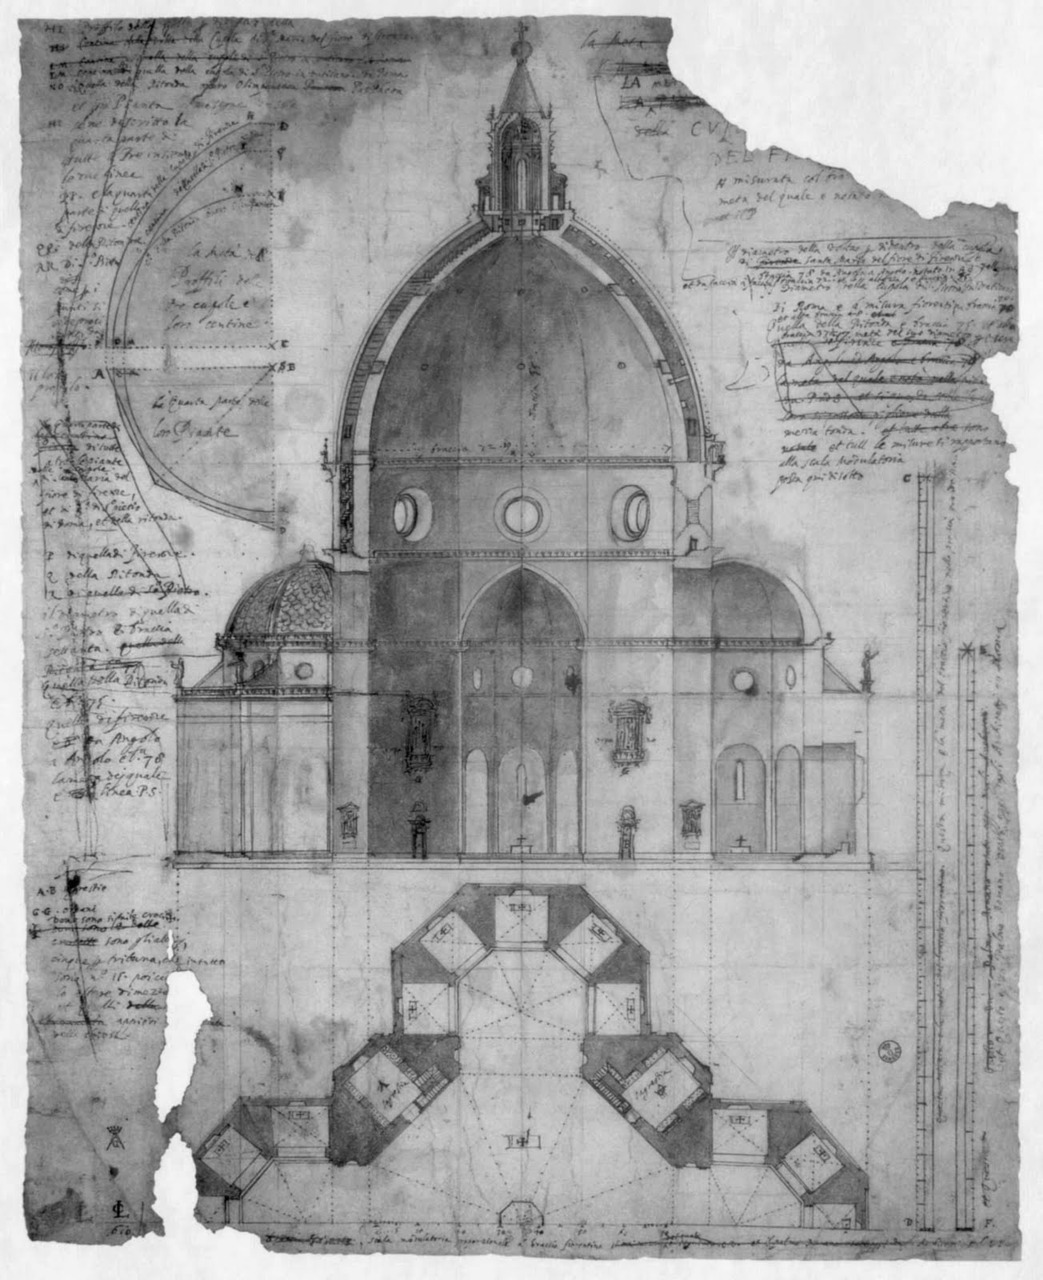 Cigoli's (1559-1613) drawing of Brunelleschi's double shell design of the dome of the Florence Cathedral